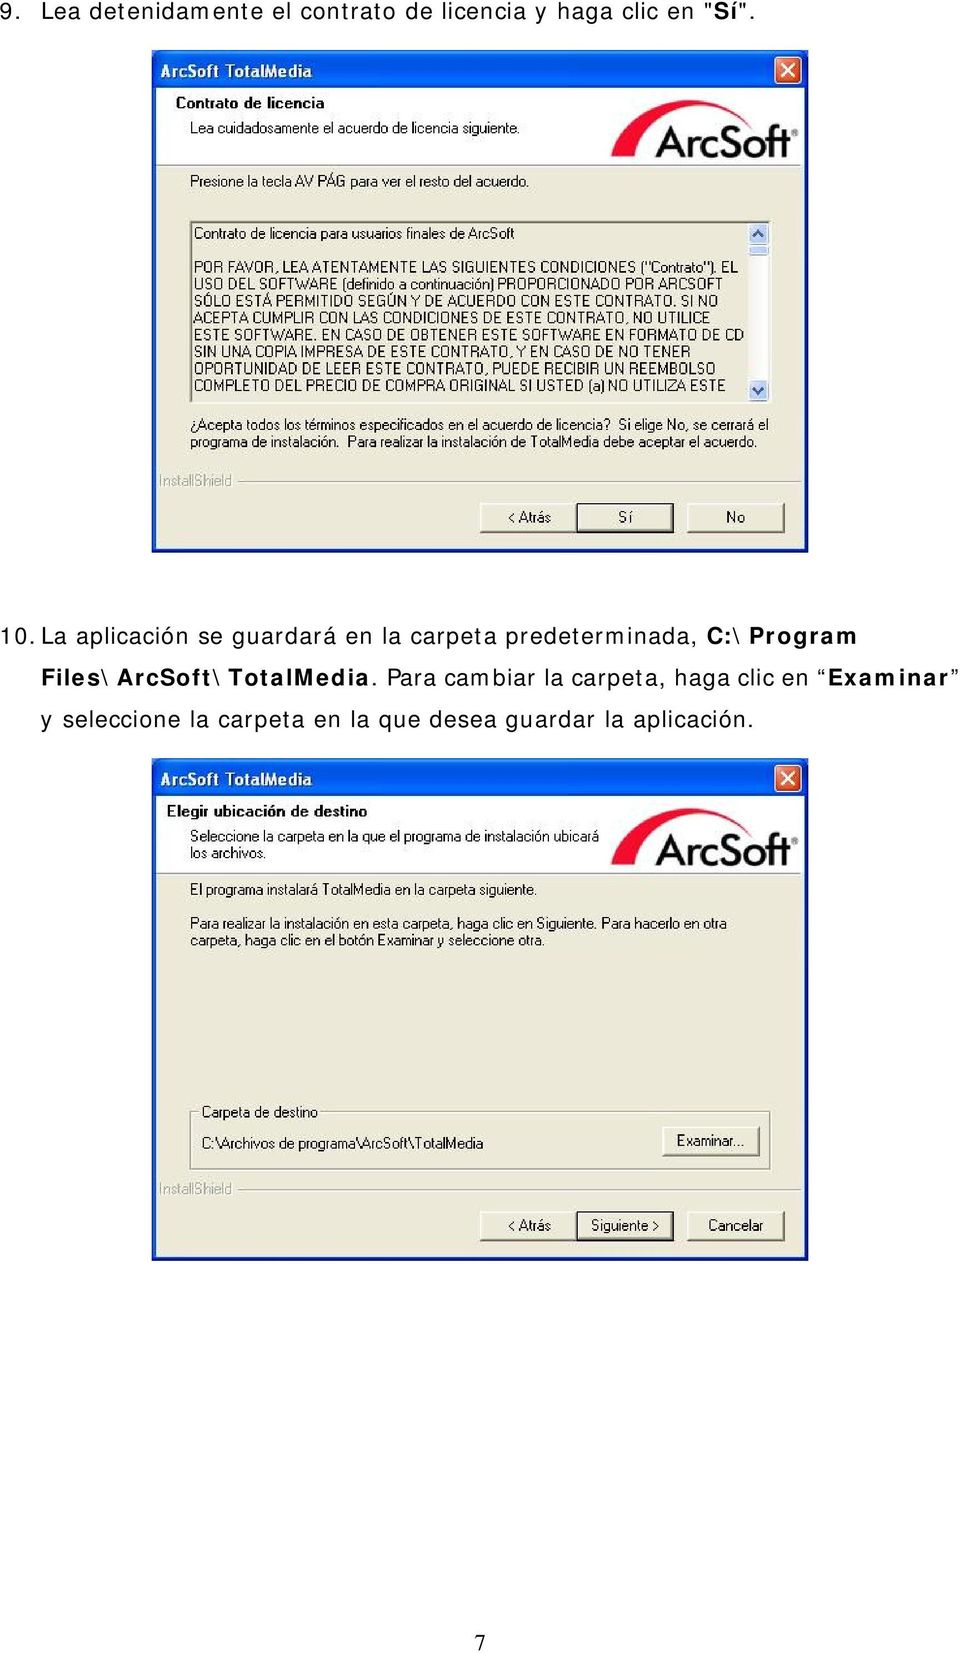 Files\ArcSoft\TotalMedia.